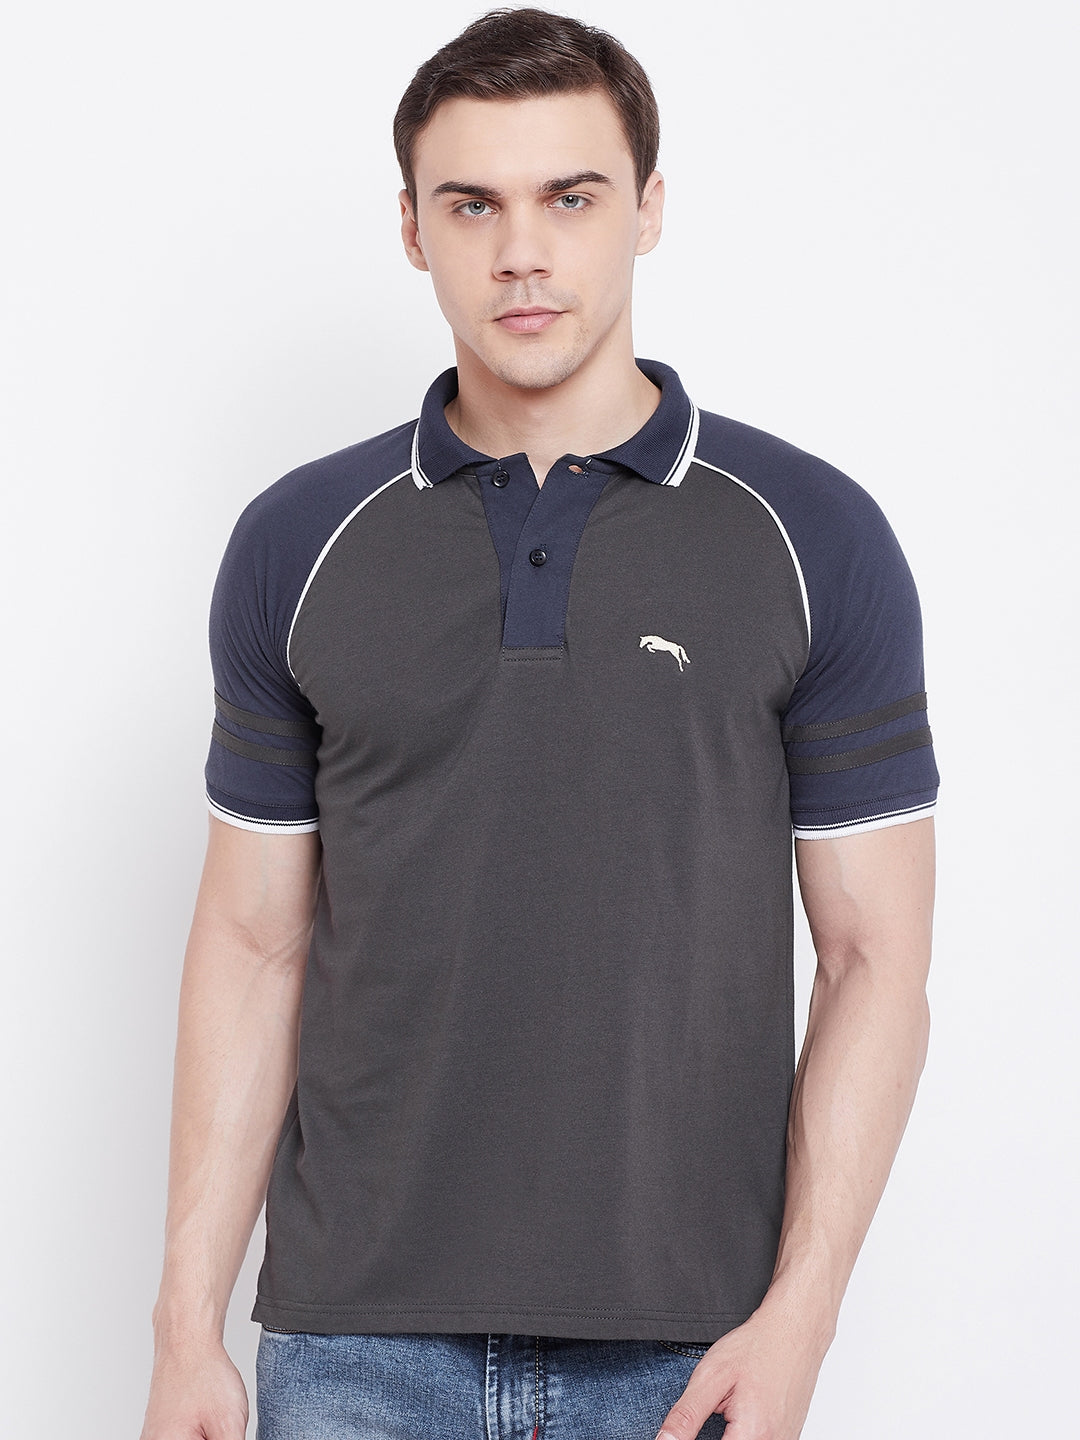 JUMP USA Men Charcoal Solid Polo T-shirts - JUMP USA